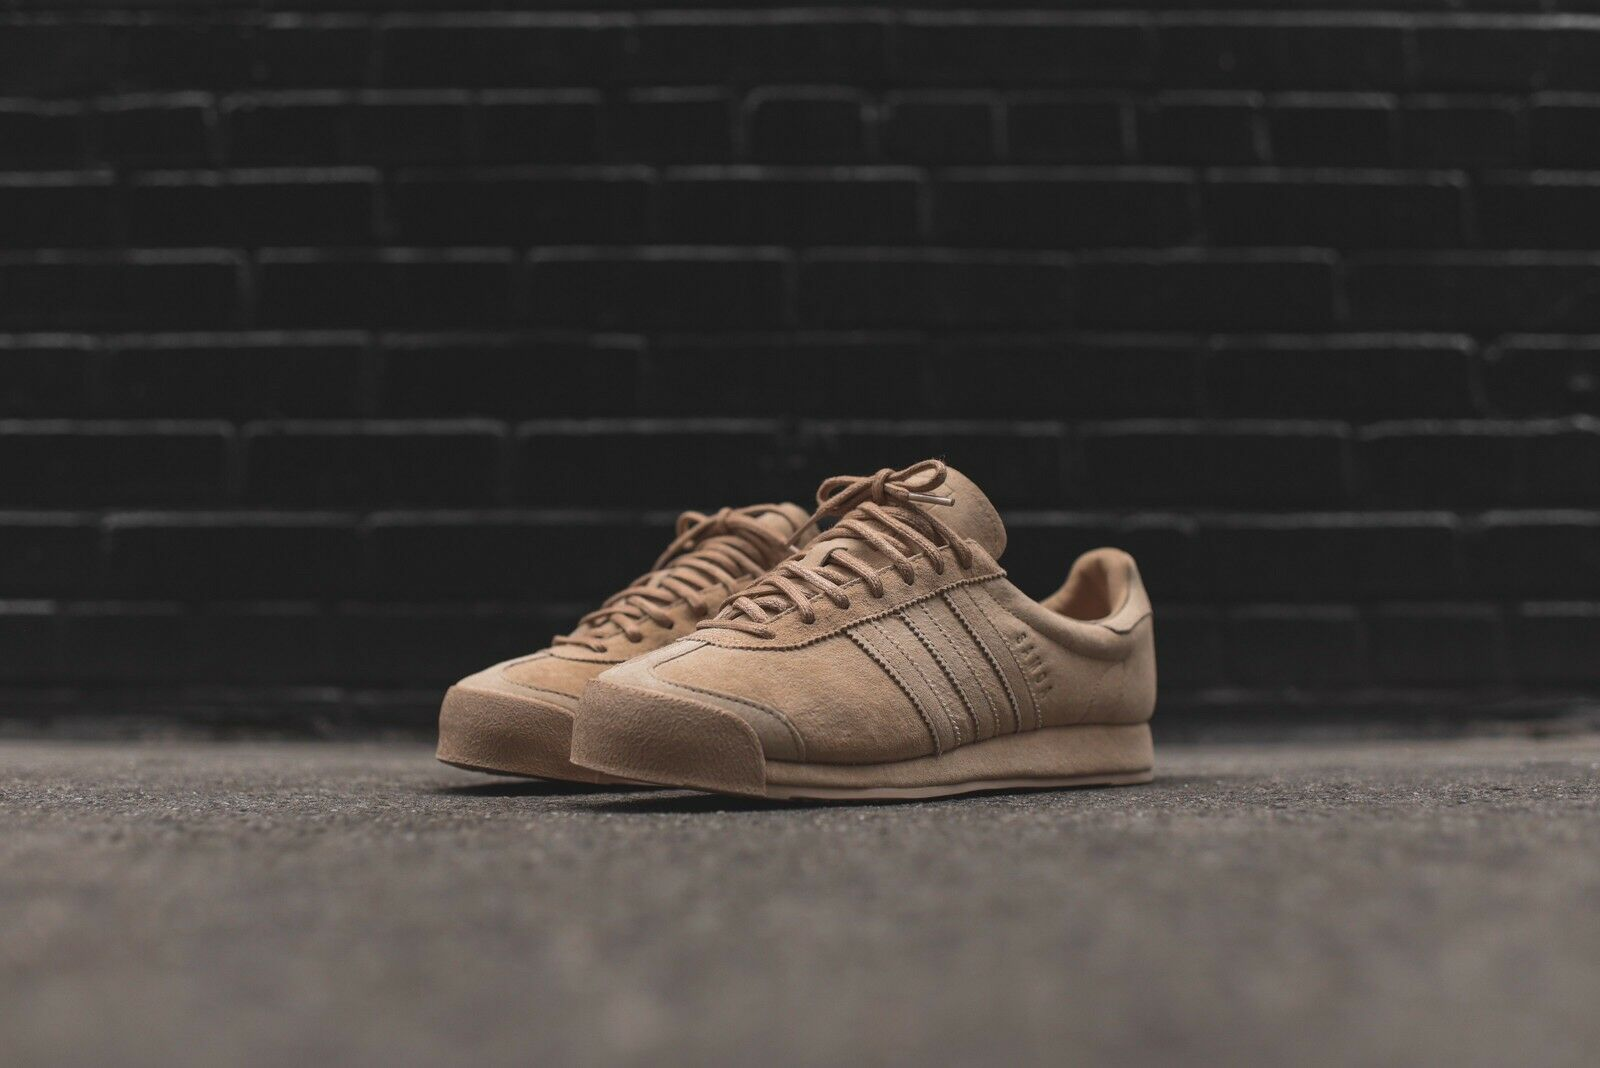 Adidas Originals Samoa Vintage Shoes Pigskin Pack Pale Nude Sz 11.5 B27736 The most popular shoes for men and women